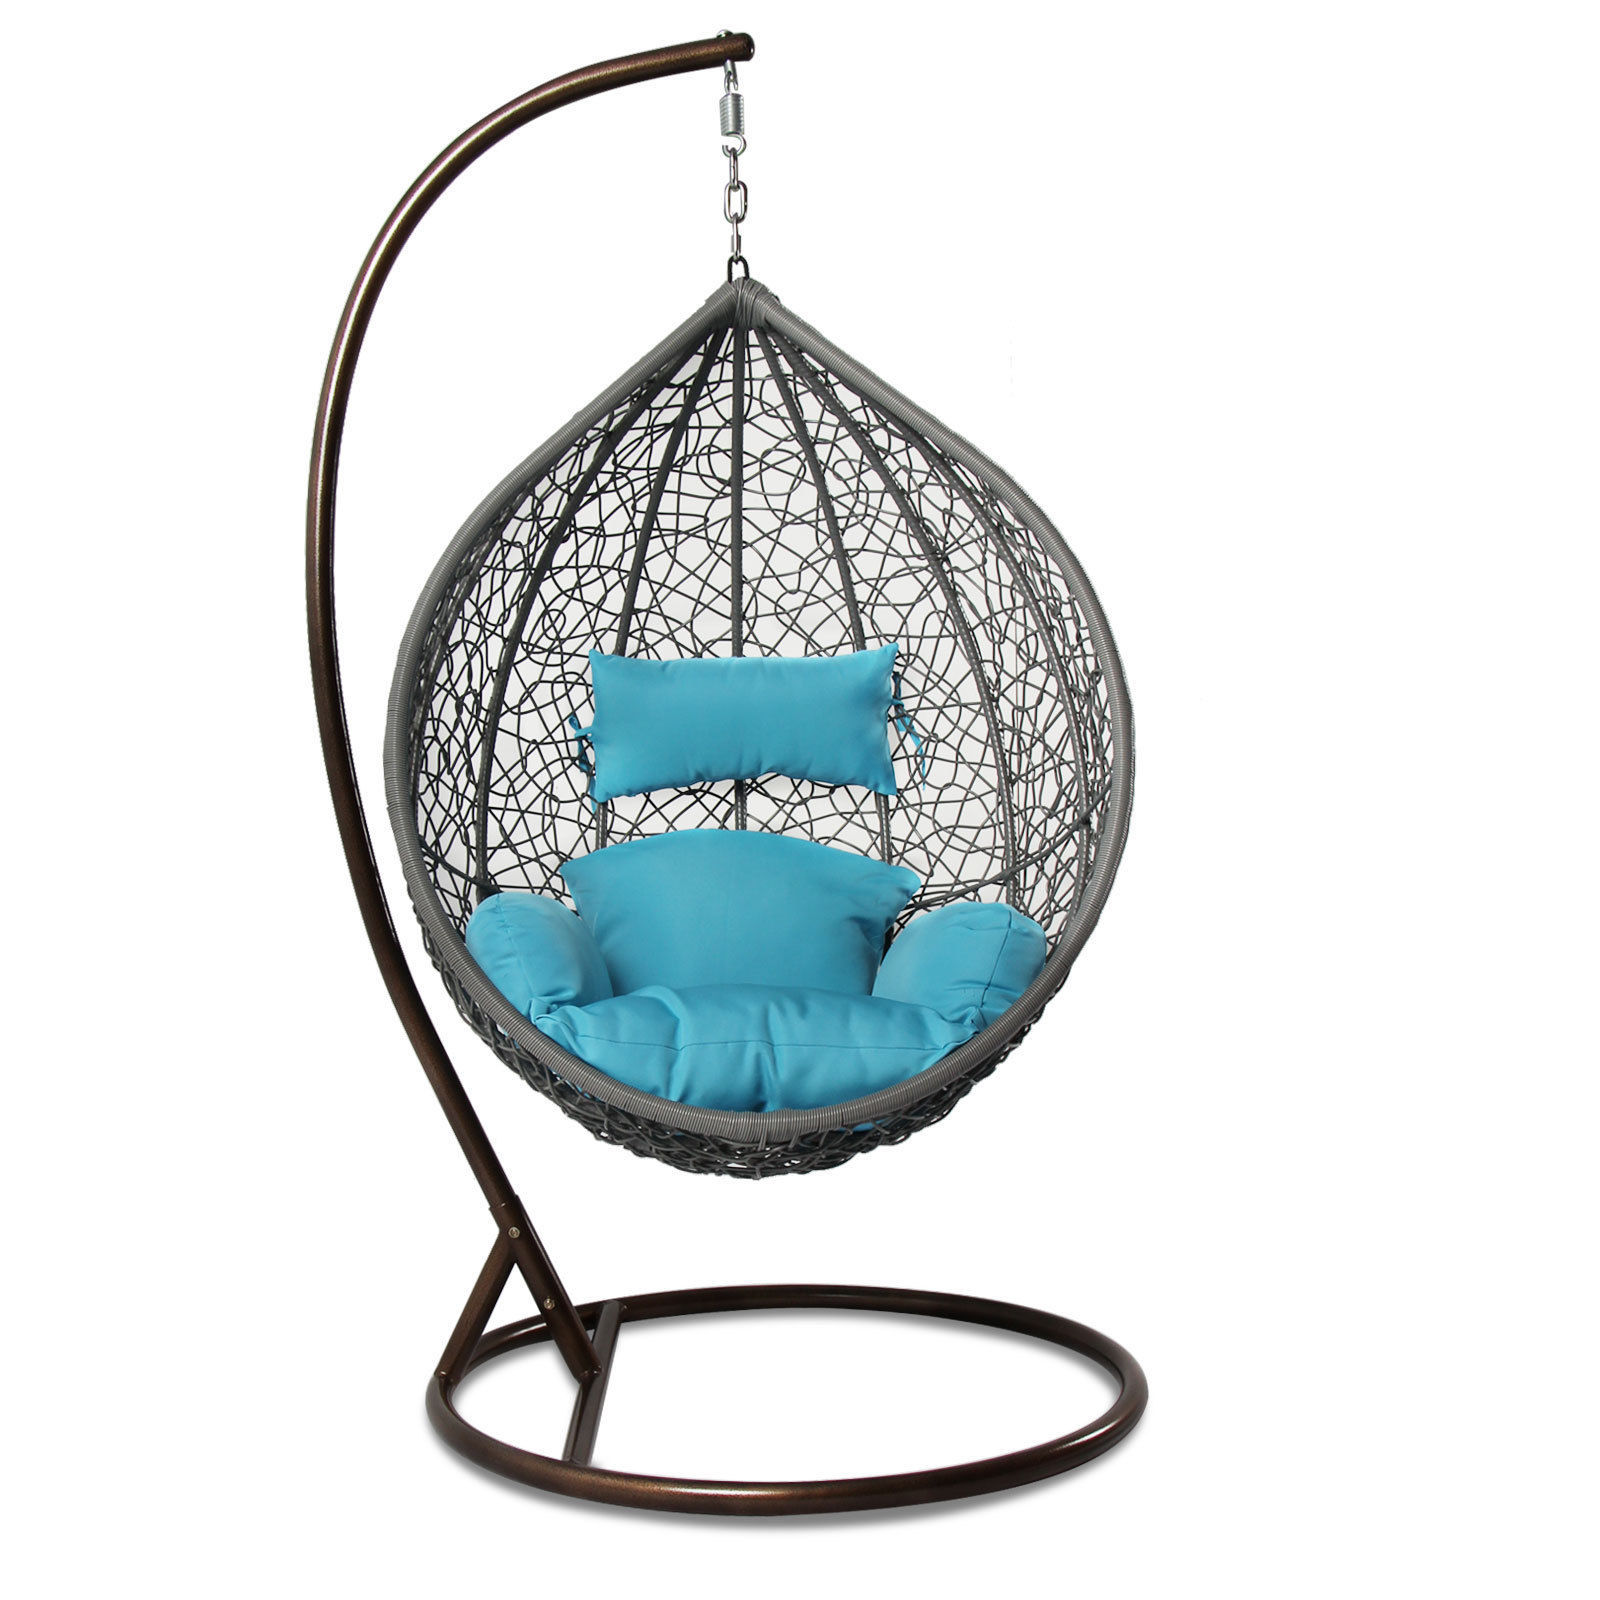 Single Patio Outdoor Handmade Rattan Hanging Wicker Swing Chair w/Cover&Stand